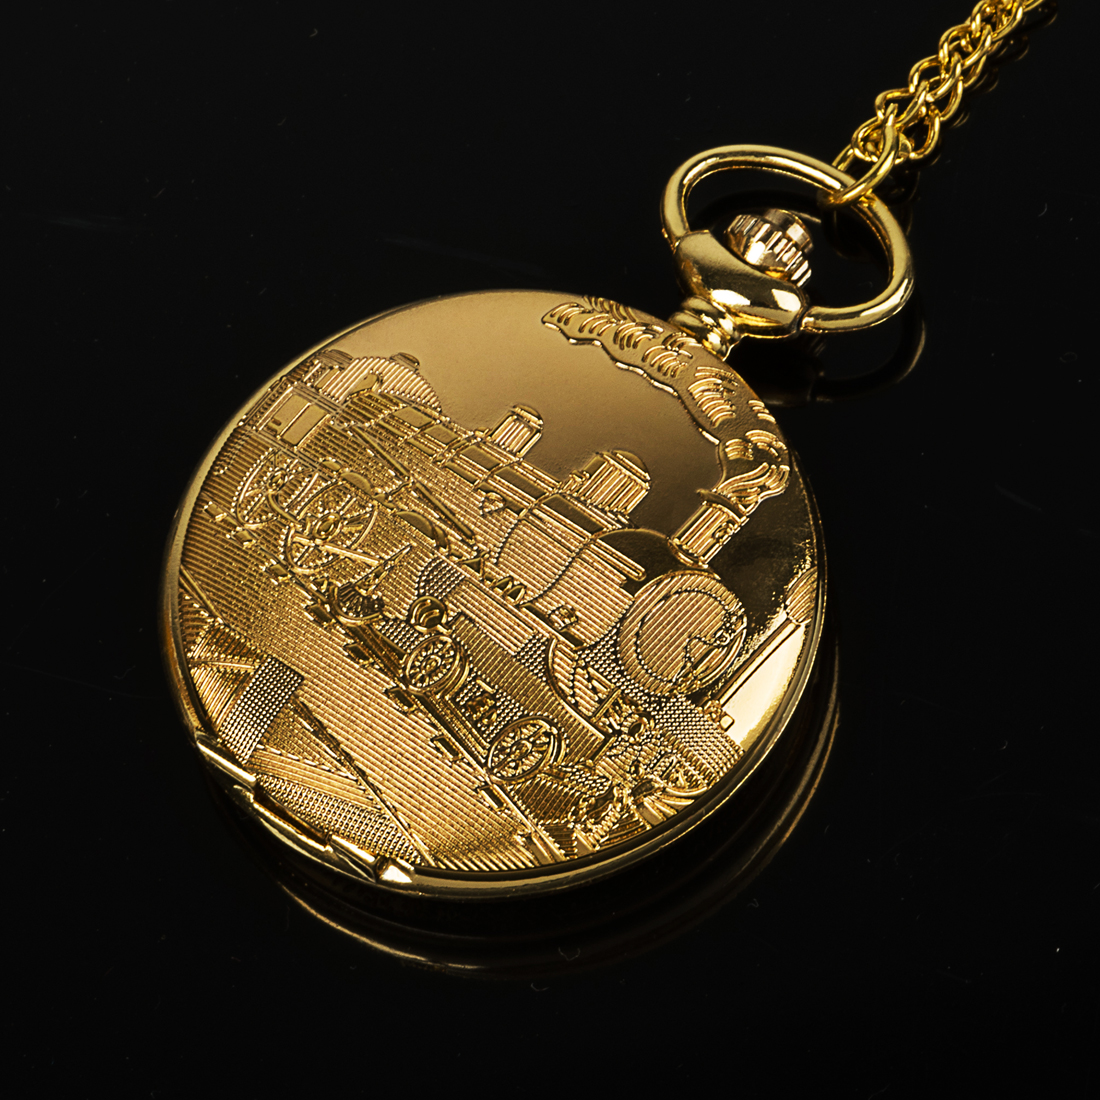 Vintage men 39 s watch Train For Locomotive Motor Quartz Railway Pocket Watch Steampunk Nacklace Pendant Womens Mens Gift in Pocket amp Fob Watches from Watches